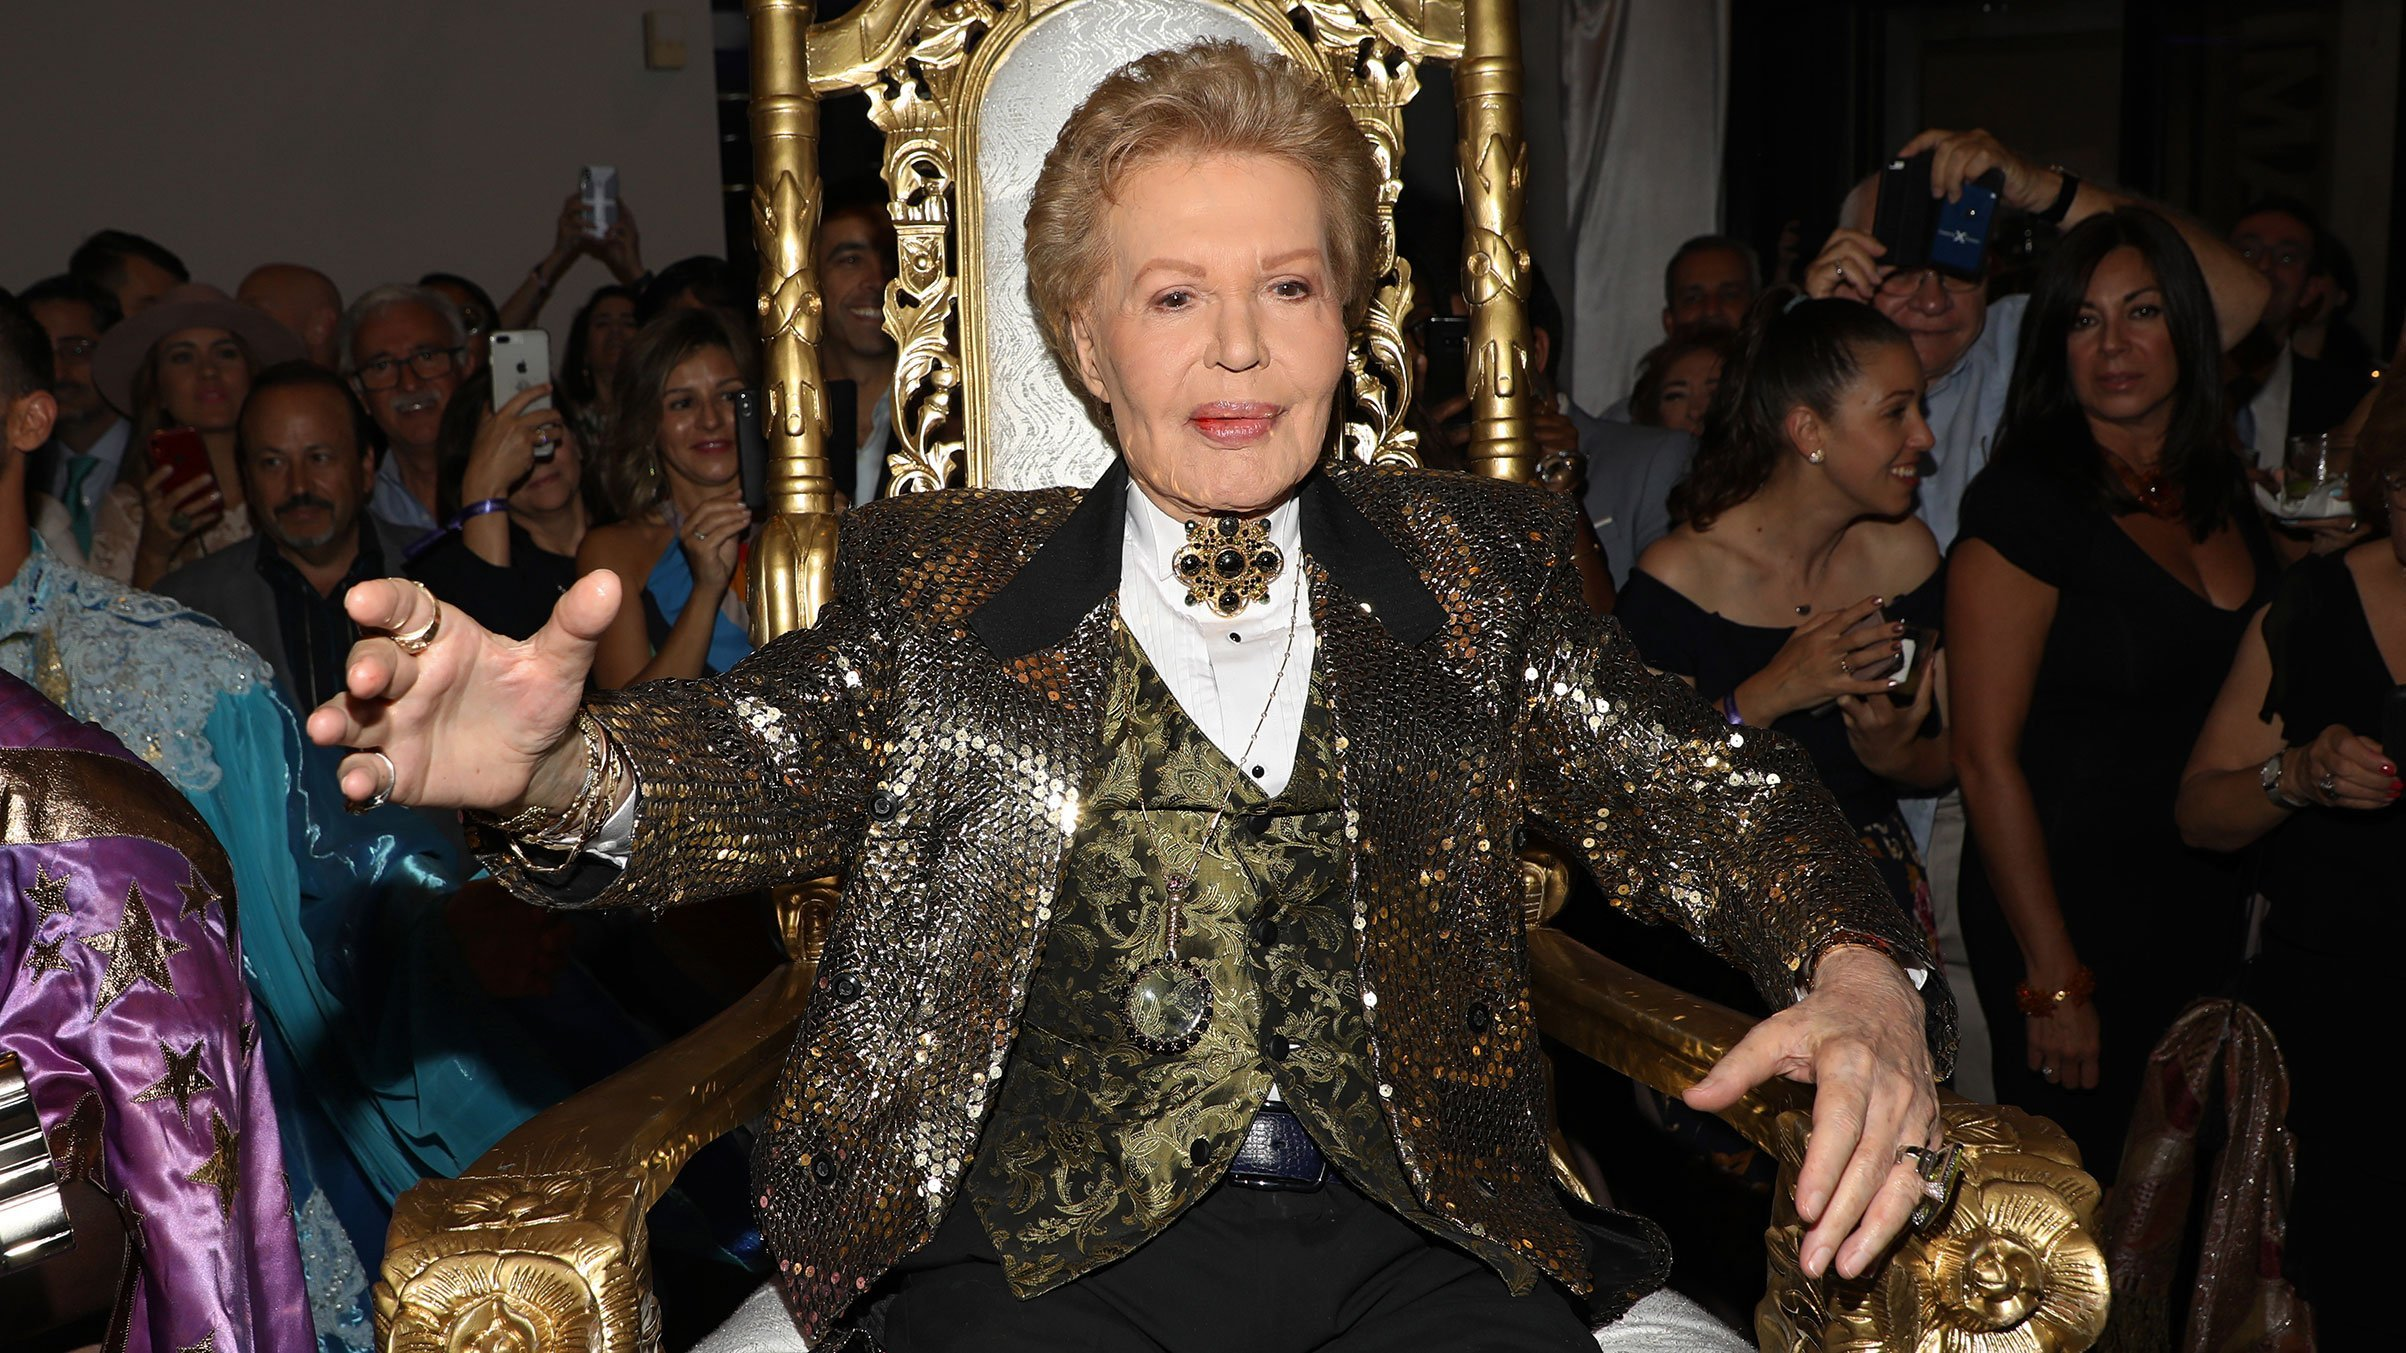 """Walter Mercado attends the opening of """"Mucho, Mucho Amor: 50 Years of Walter Mercado"""" at HistoryMiami Museum in Miami, Florida, on Aug. 1, 2019. (Credit: Alexander Tamargo/Getty Images via CNN)"""